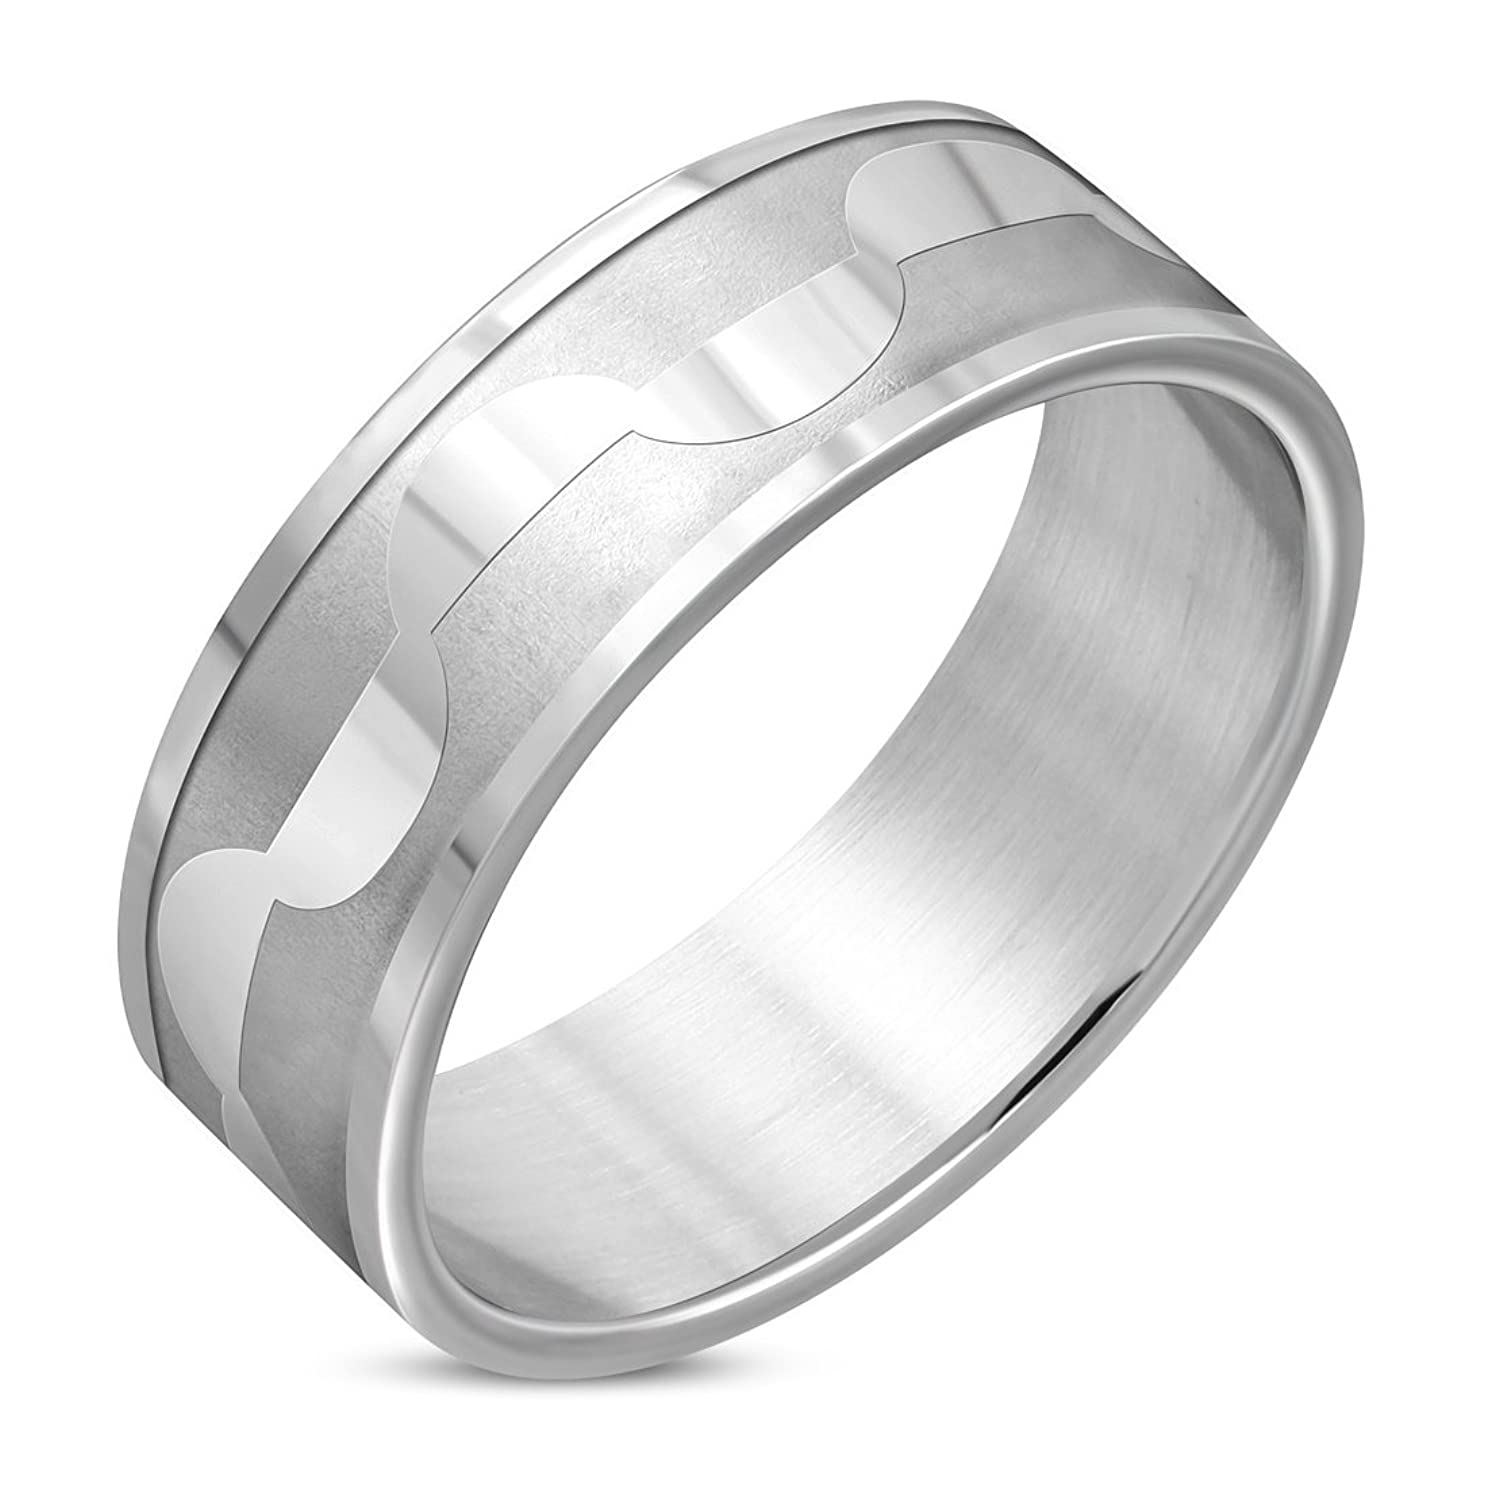 Stainless Steel Matte Finished Half-Circle Link Flat Band Ring